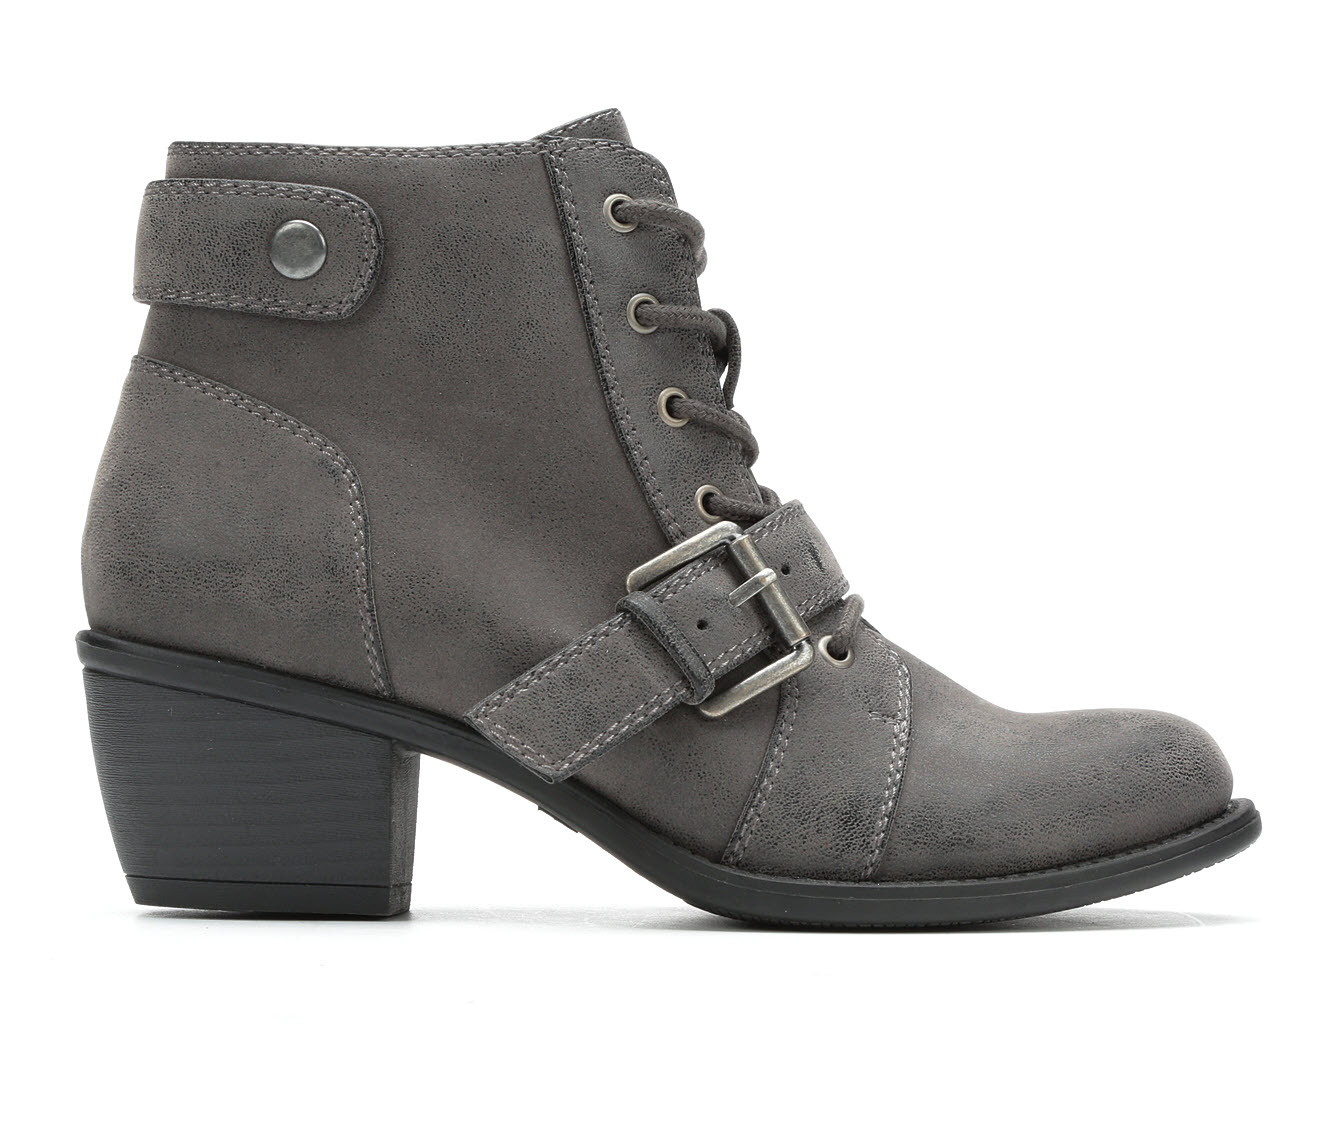 Axxiom Carly Women's Boot (Gray Faux Leather)